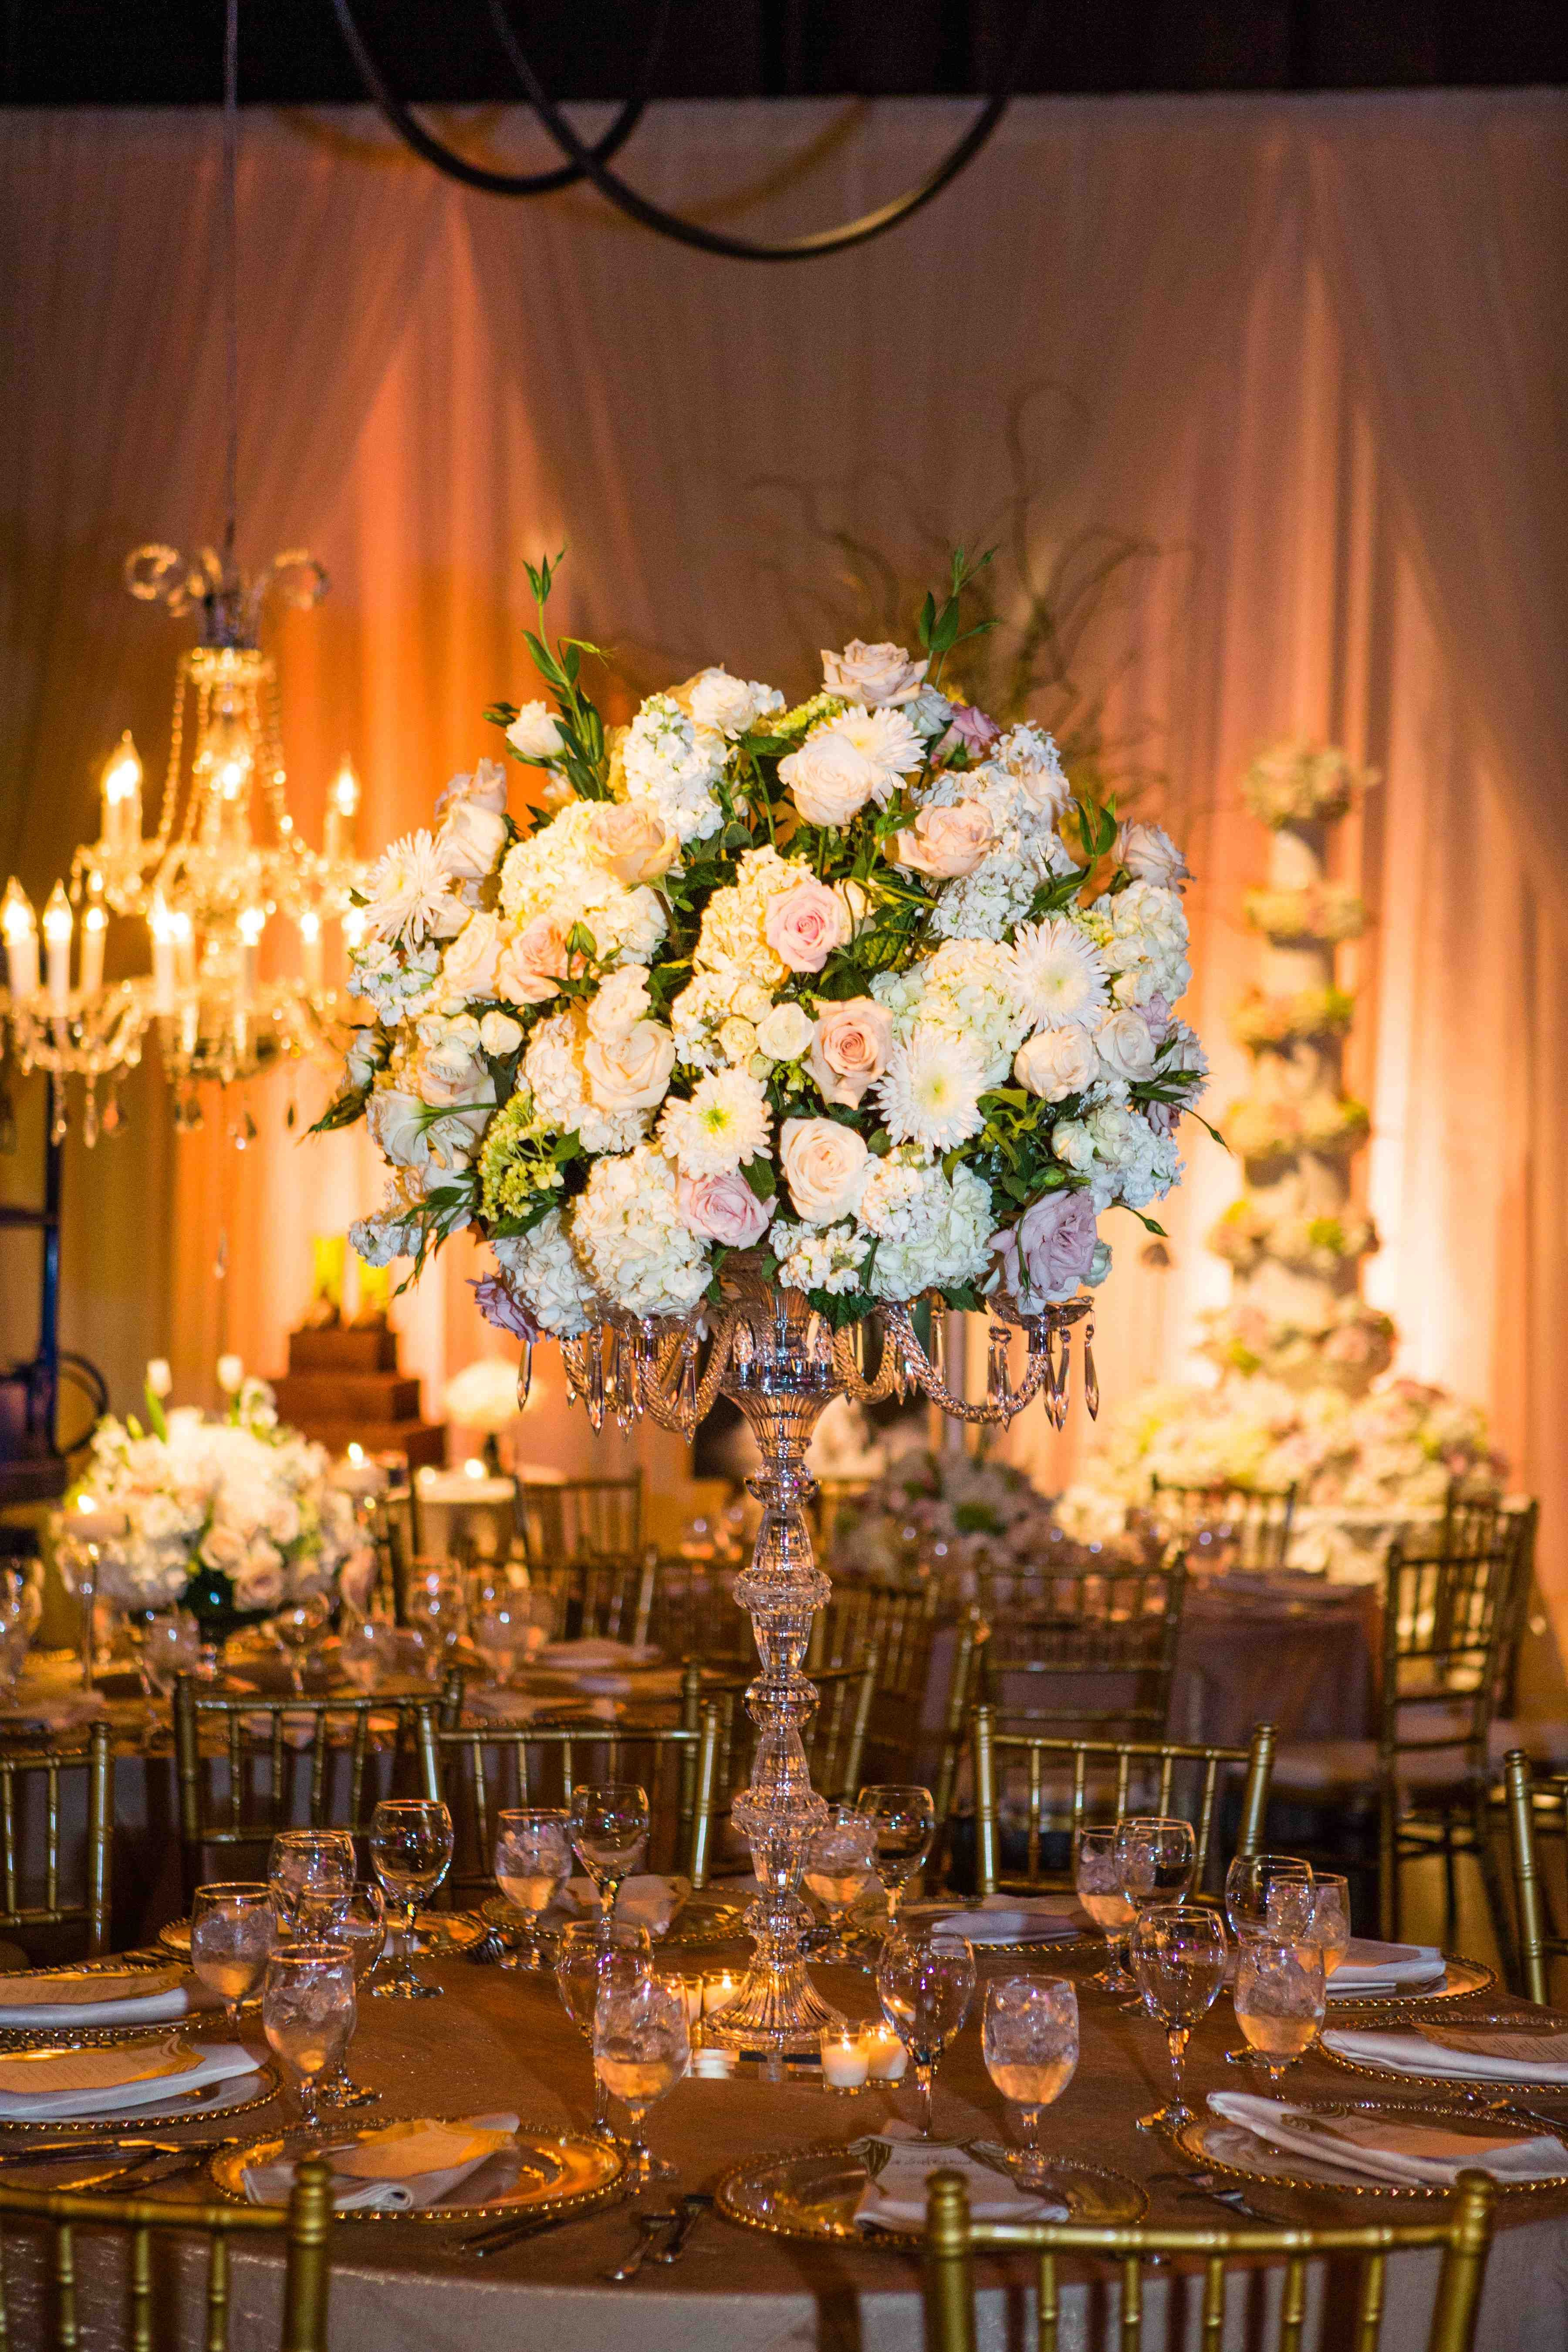 Chandeliers to enhance the beauty of the floral centerpieces.. bling bling